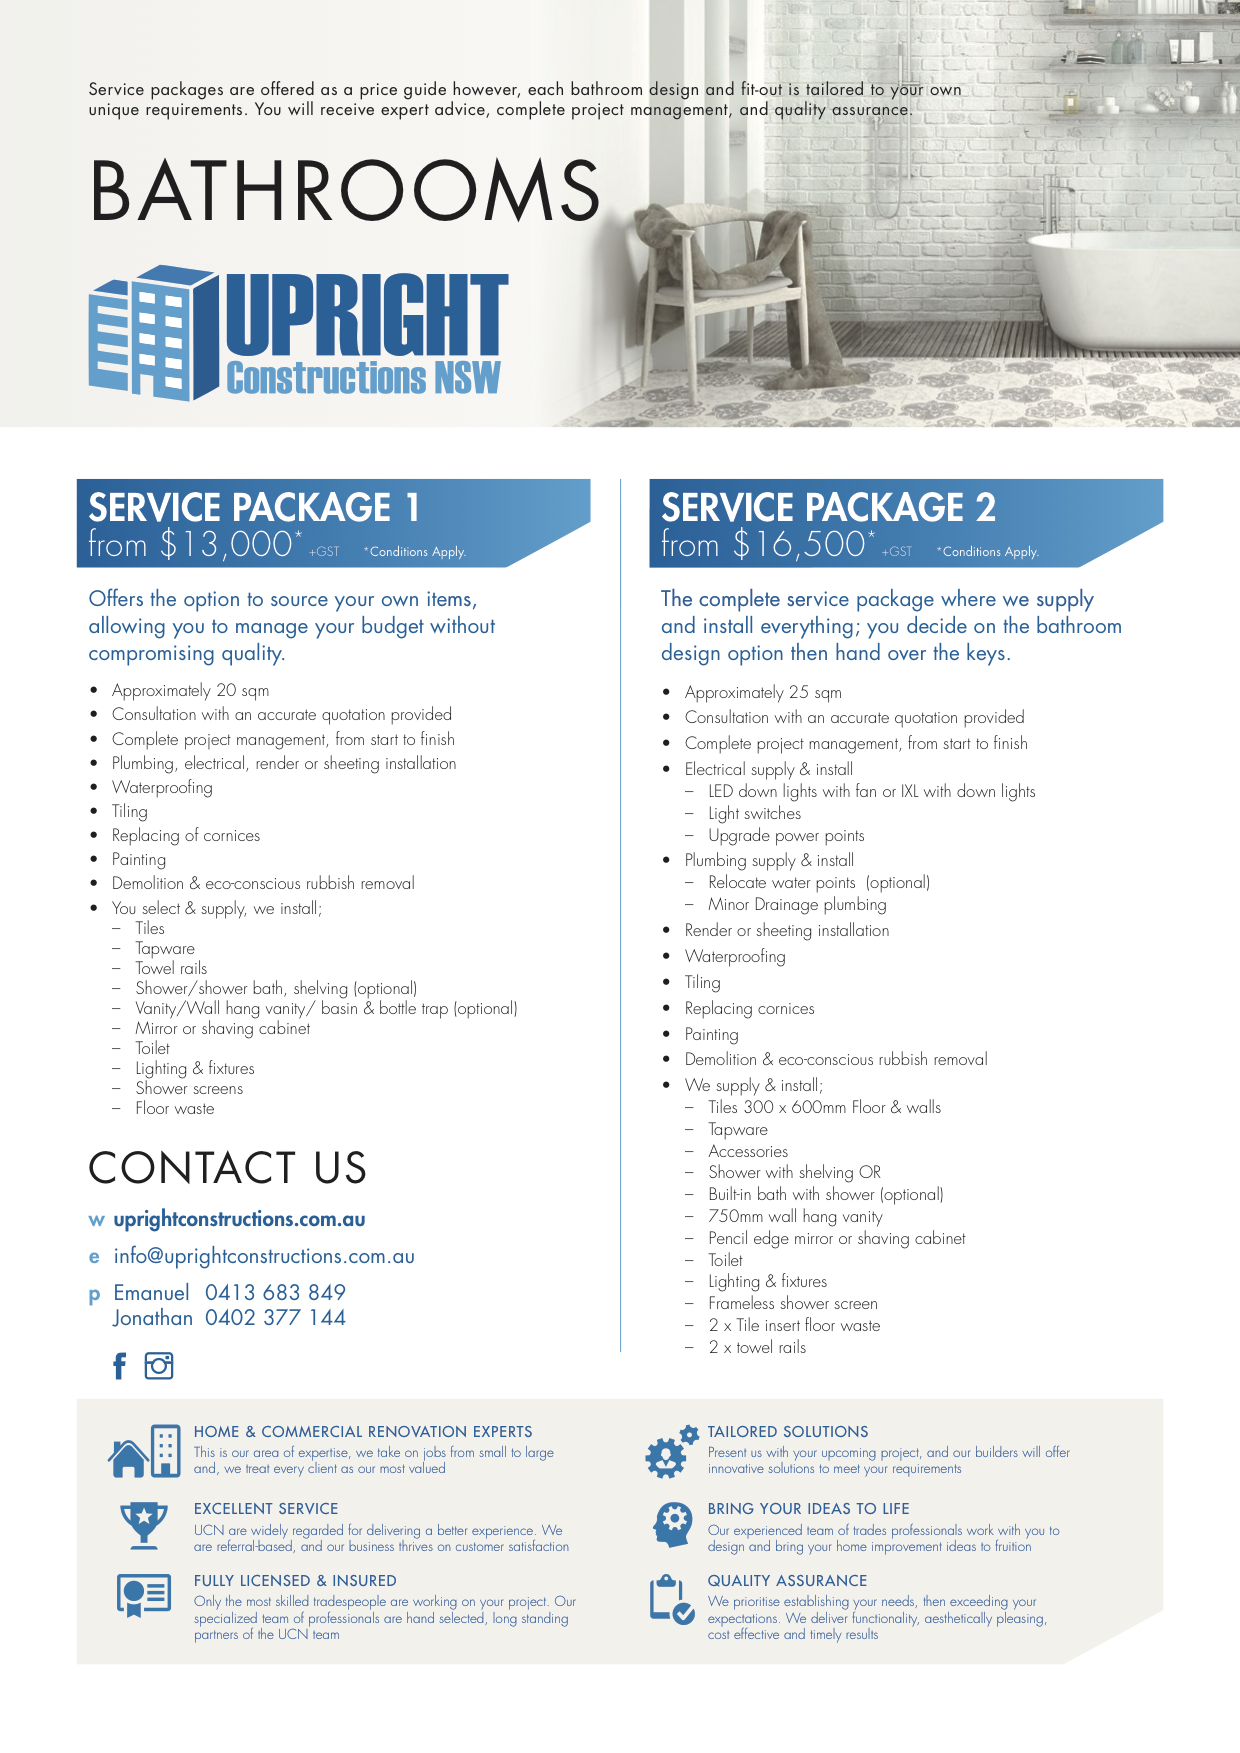 UPRIGHT e-flyer A4.jpg